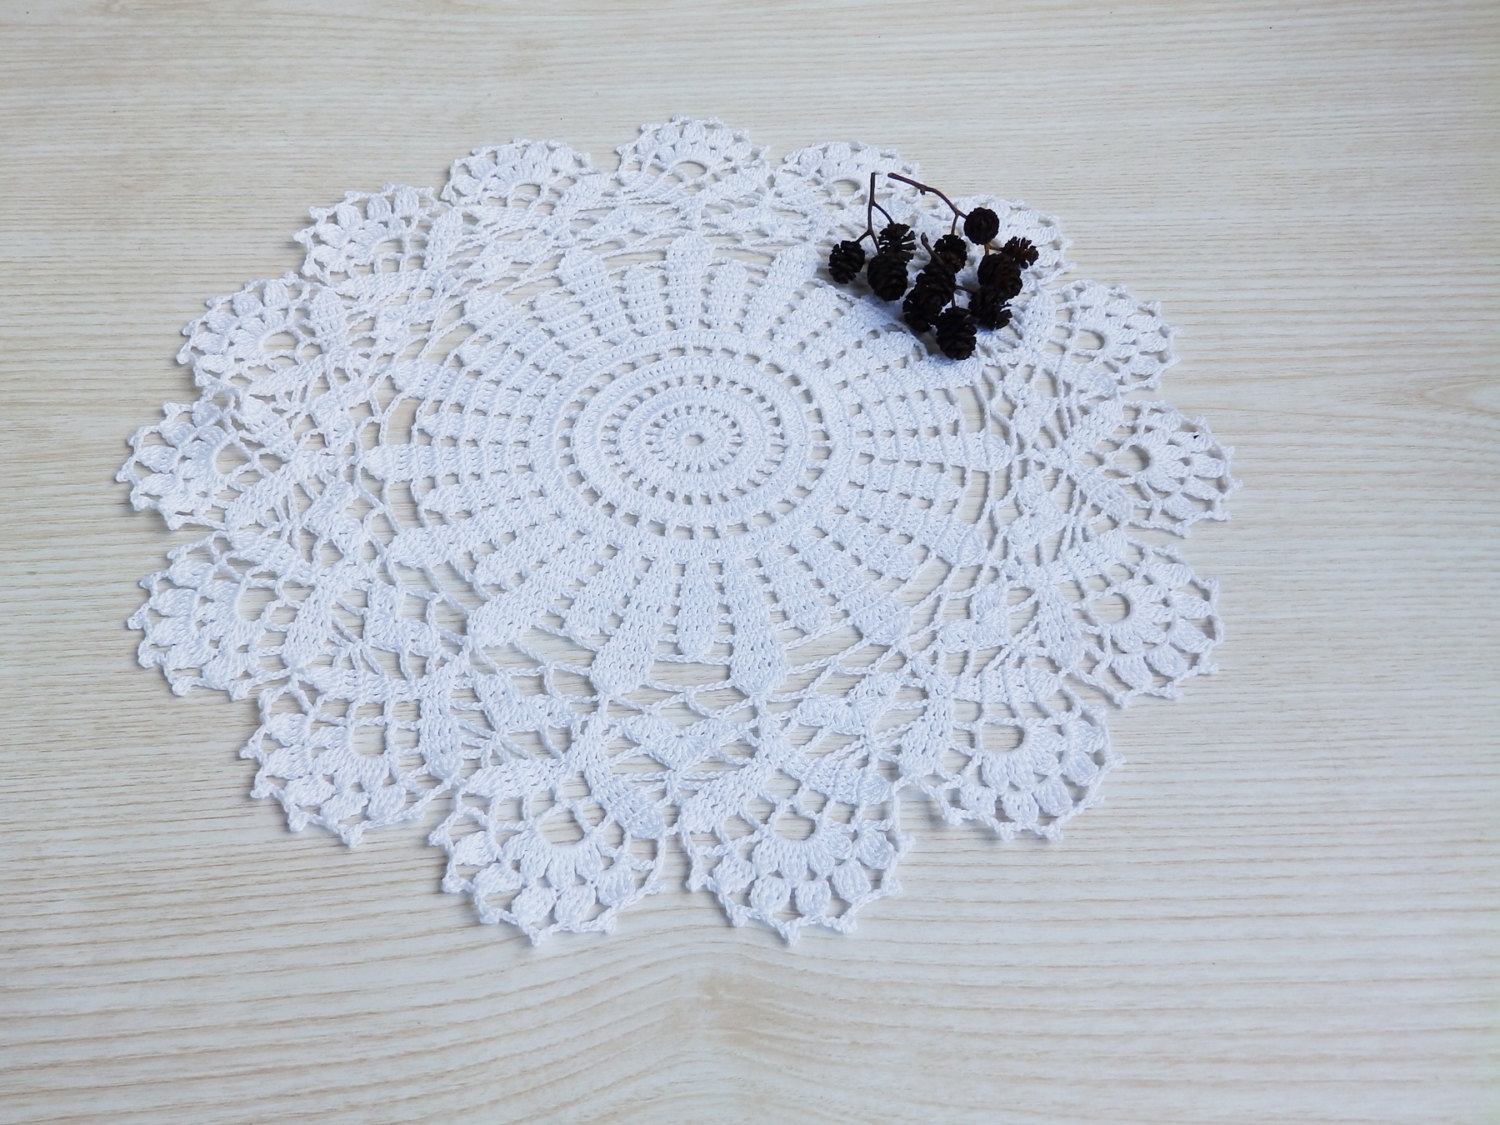 lace crochet white round table decoration doily handmade. Black Bedroom Furniture Sets. Home Design Ideas